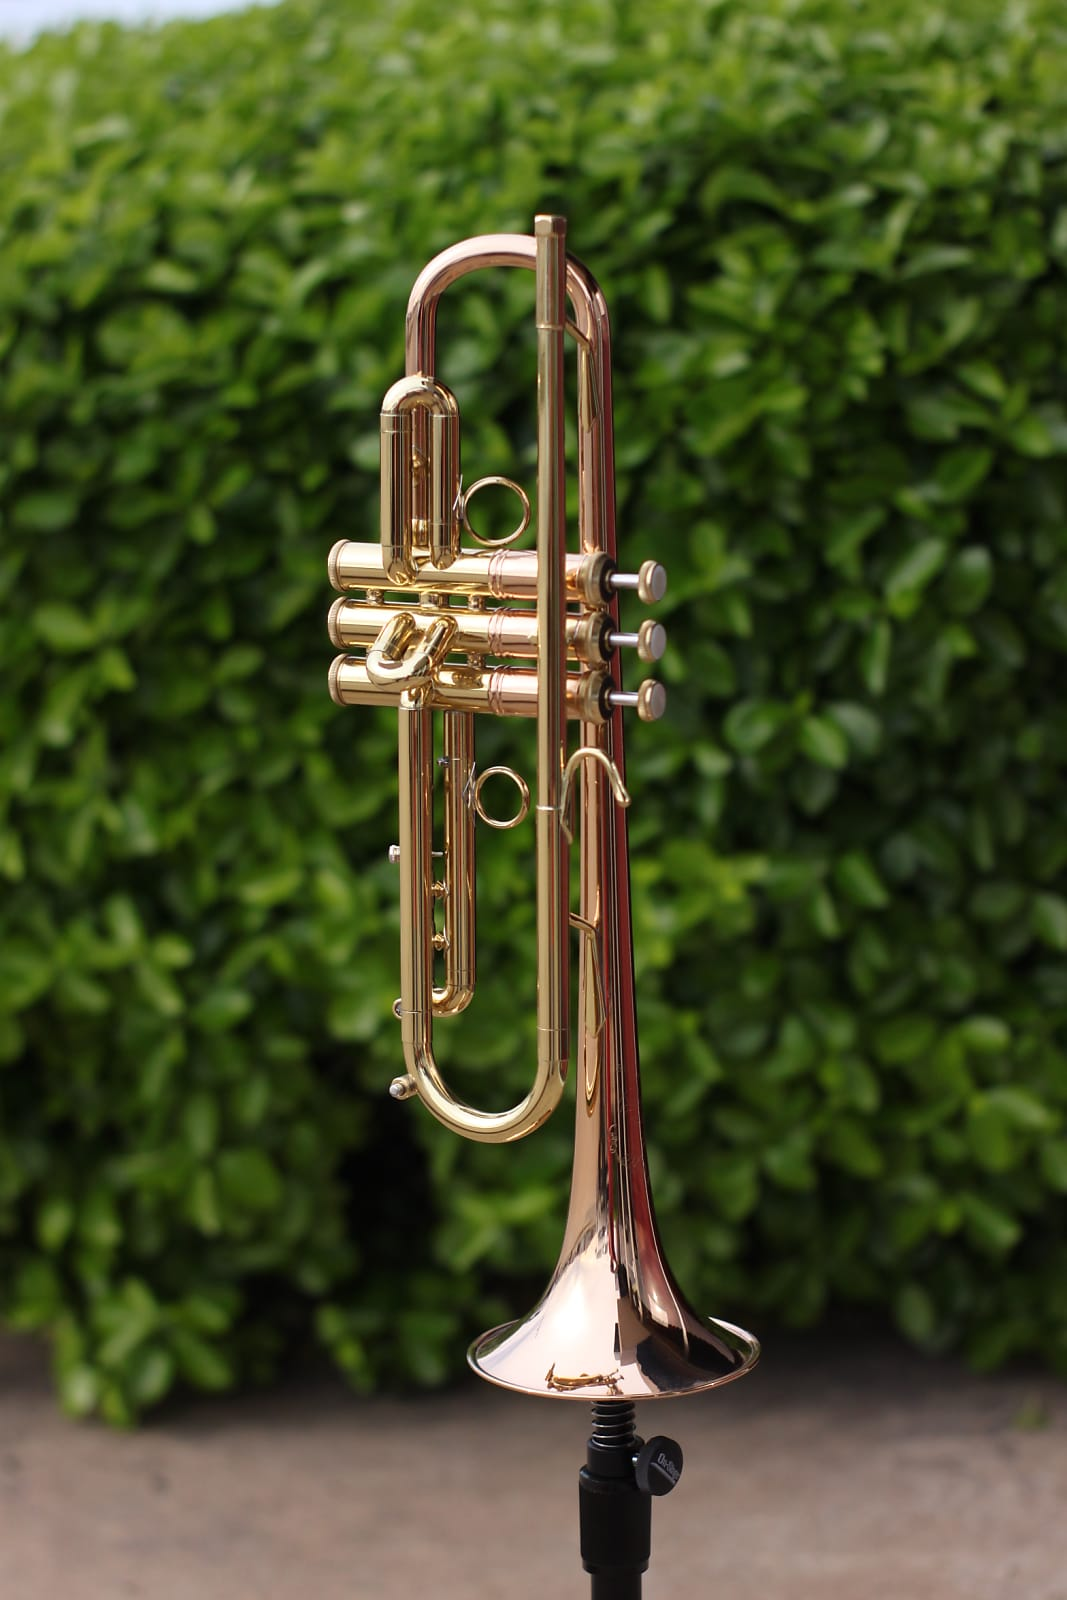 Bach LT1901B Stradivarius Commercial Model Bb Trumpet - Open Box Discount - Free Shipping!